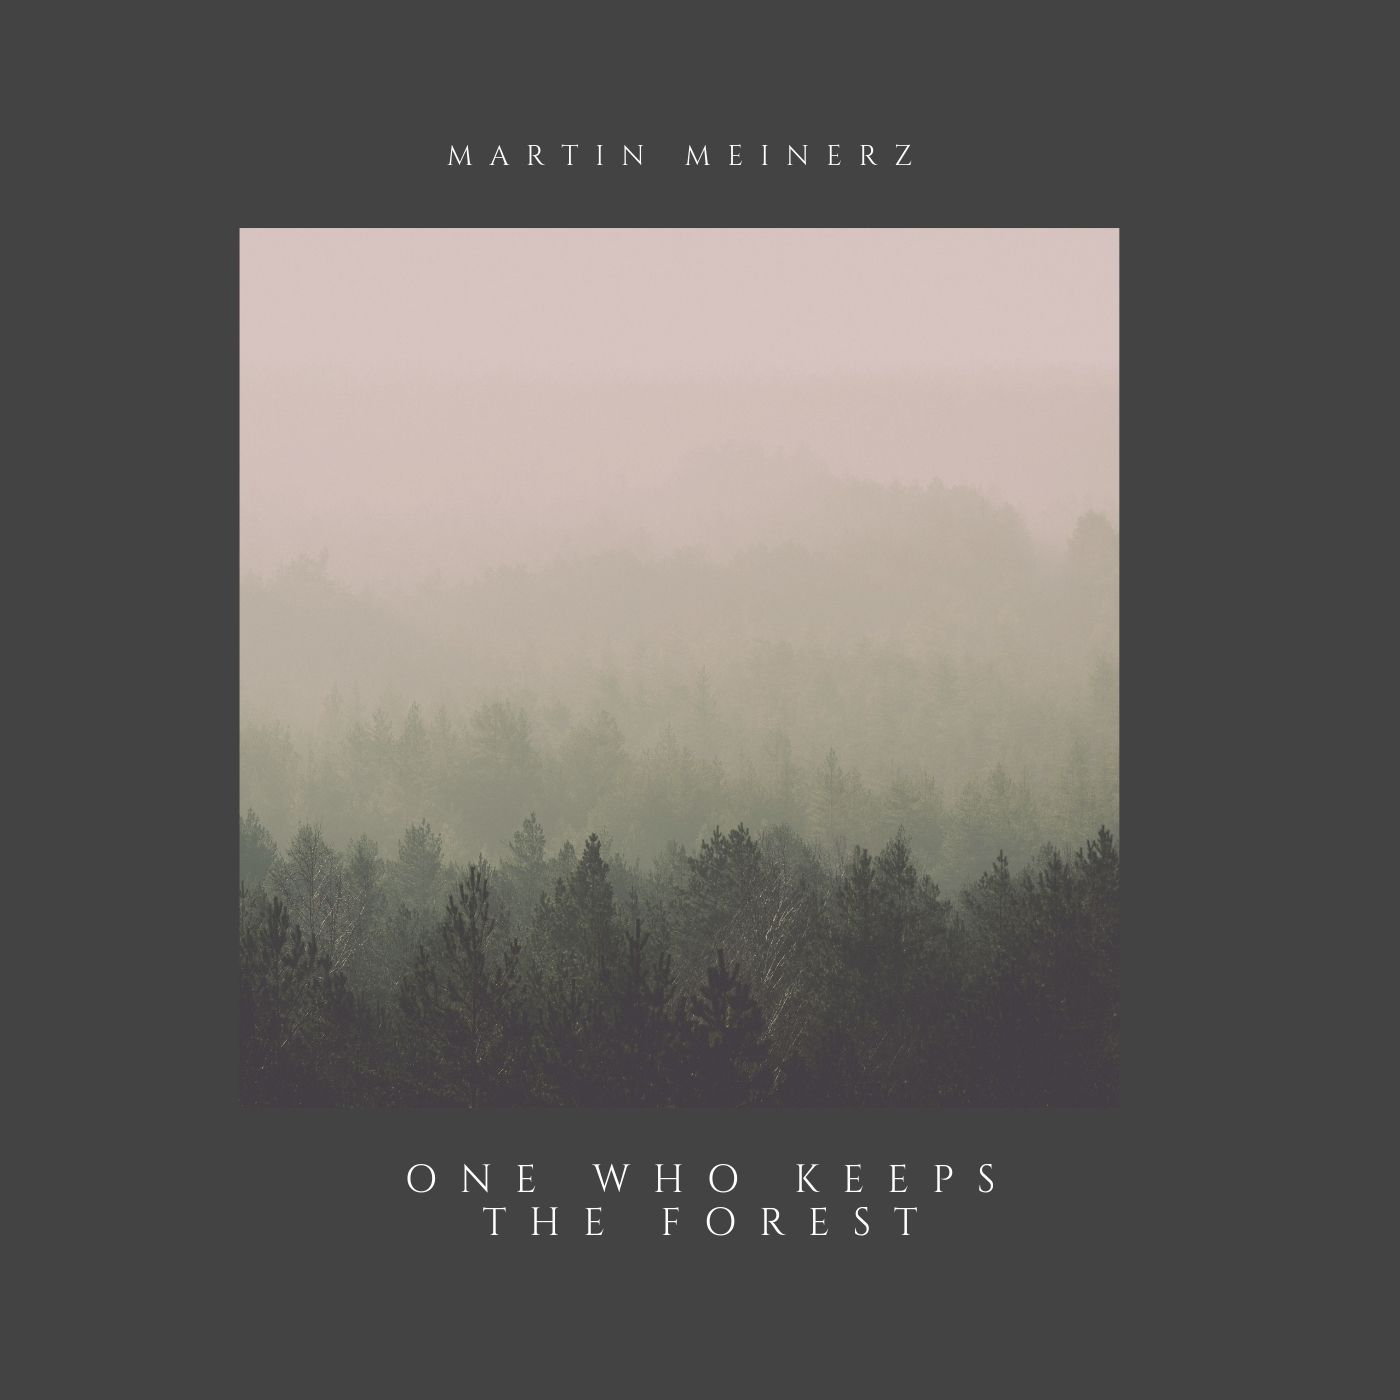 One Who Keeps The Forest - My latest album, is available to purchase or stream on all major music outlets. One Who Keeps The Forest is a collection of meditative and ambient works based on the world around us. Best listened to when you need a few quiet moments and deep breaths.